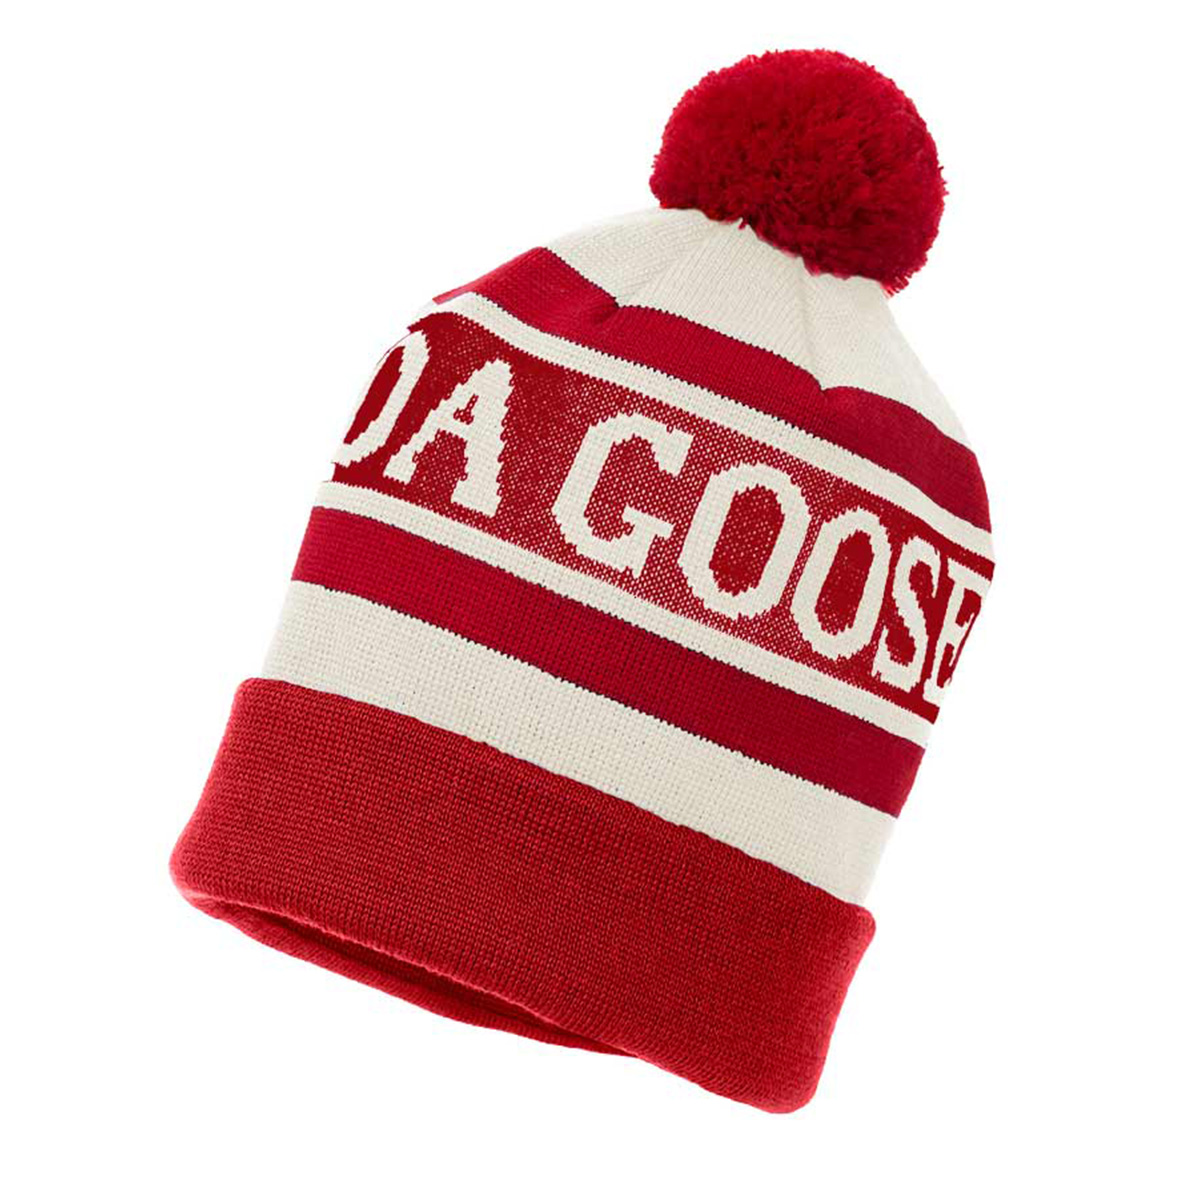 2c650987d1f2a9 Men's Logo Pom Hat | Canada Goose | Sporting Life Online